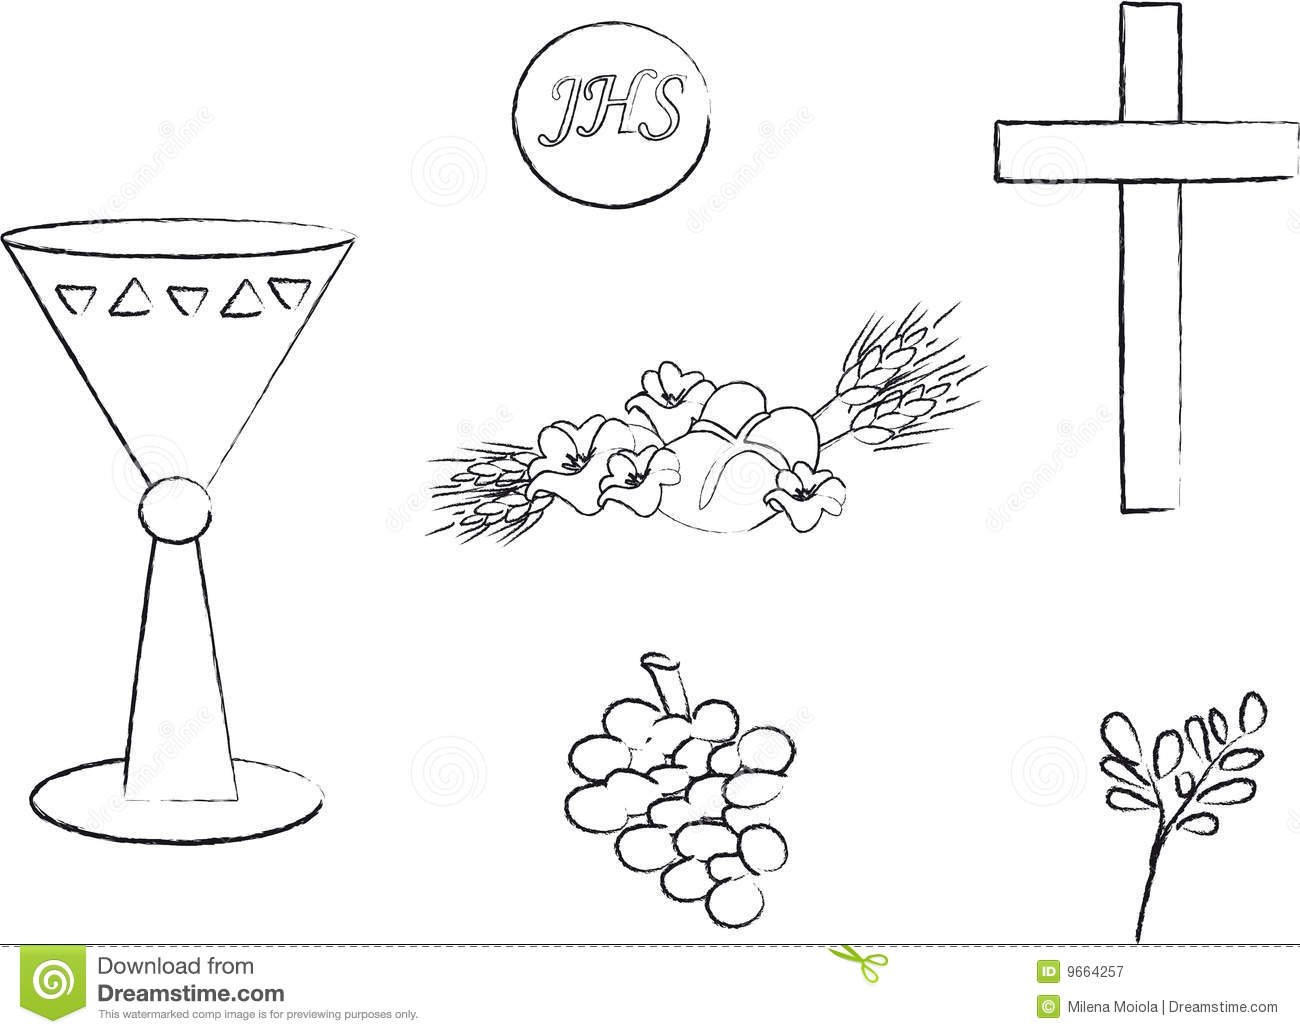 Sacraments stock illustrations 203 sacraments stock symbol for christianity an illustration featuring a black and white outline of symbols christianity royalty biocorpaavc